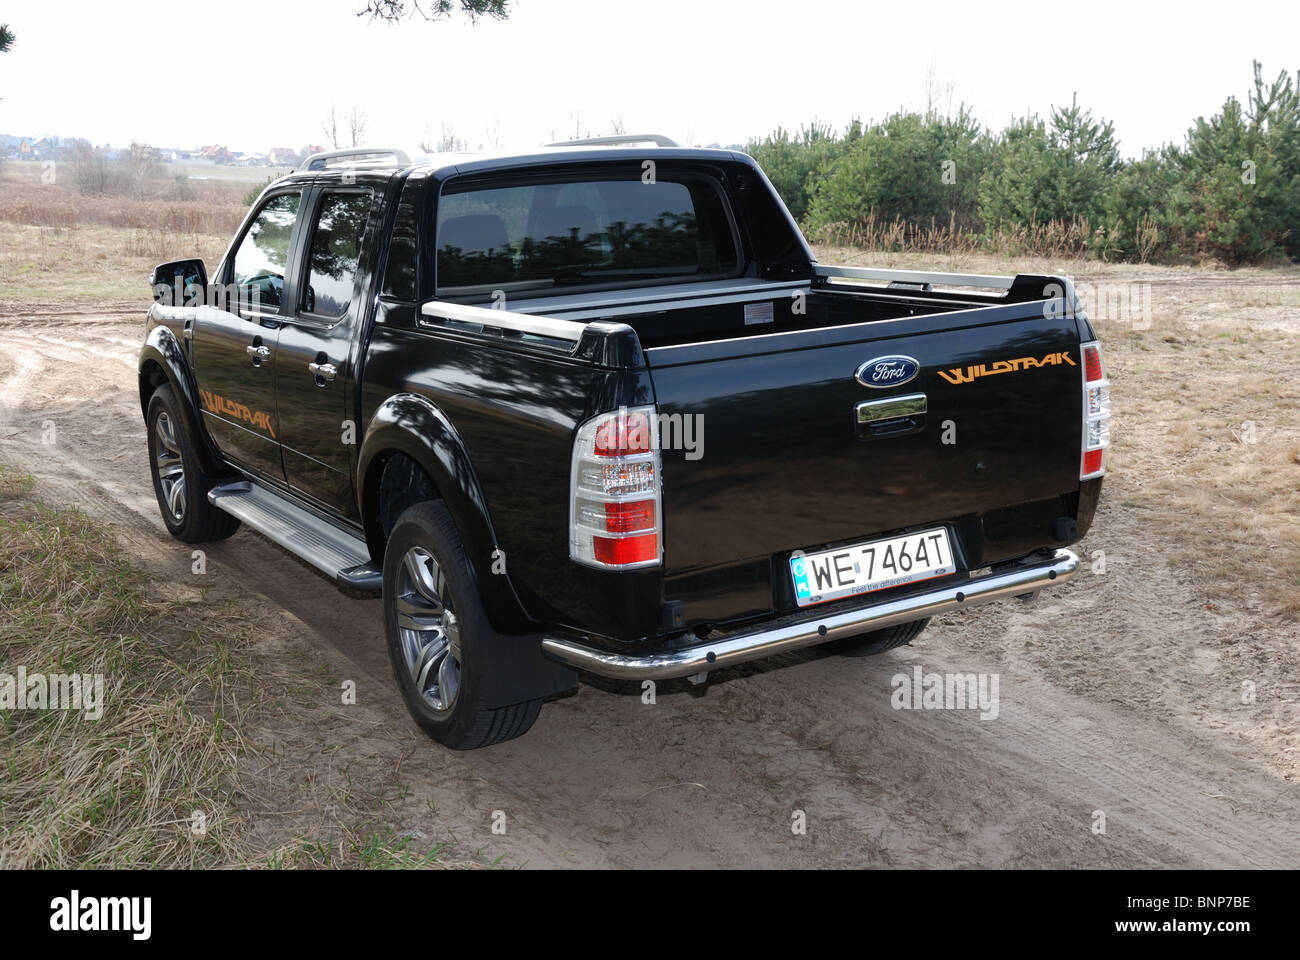 Ford Ranger 3.0 TDCi Wildtrak 4x4 - MY 2010 - black metallic - Double Cab - German pick-up - meadow, forest - Stock Image